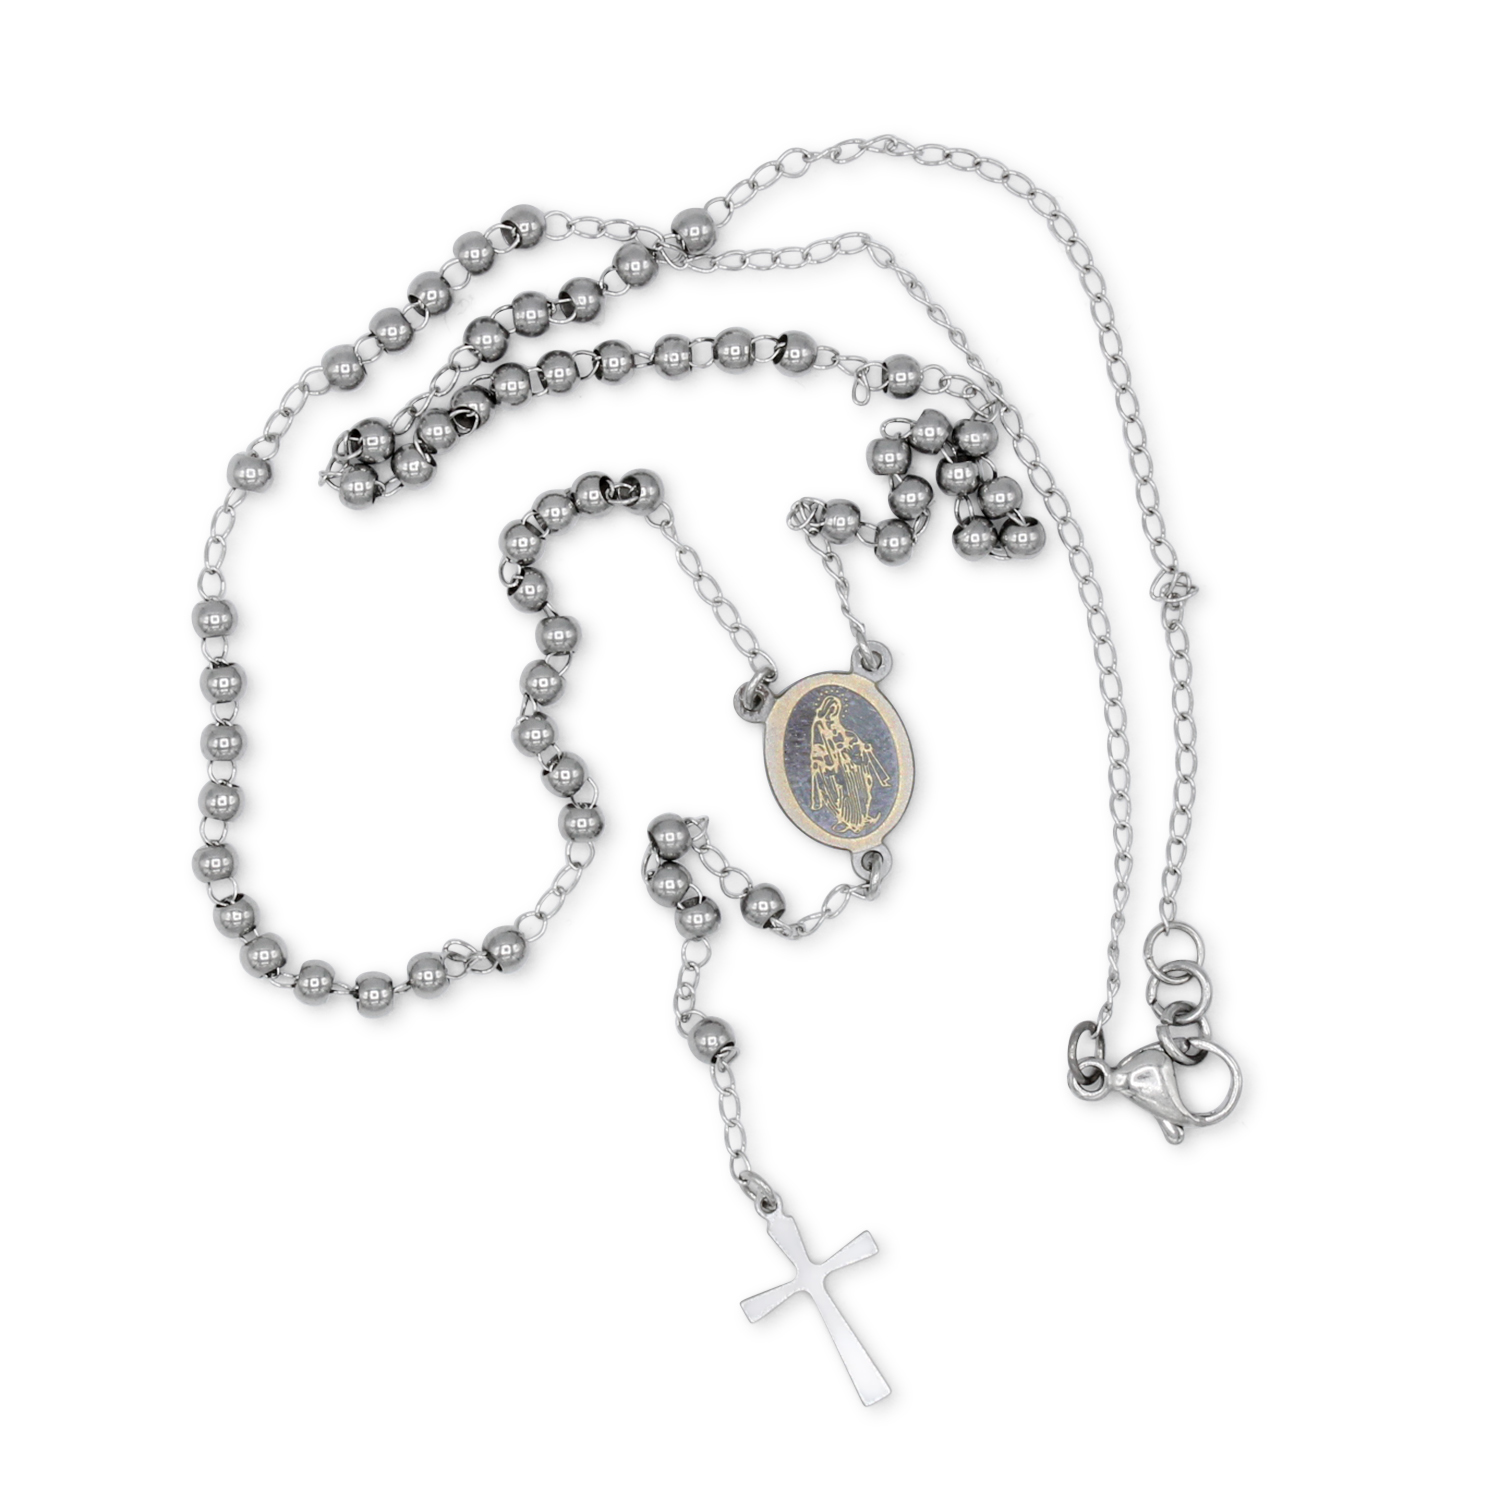 1500x1498 Traditional Rosary Necklace Five Decade Stainless Steel Catholic